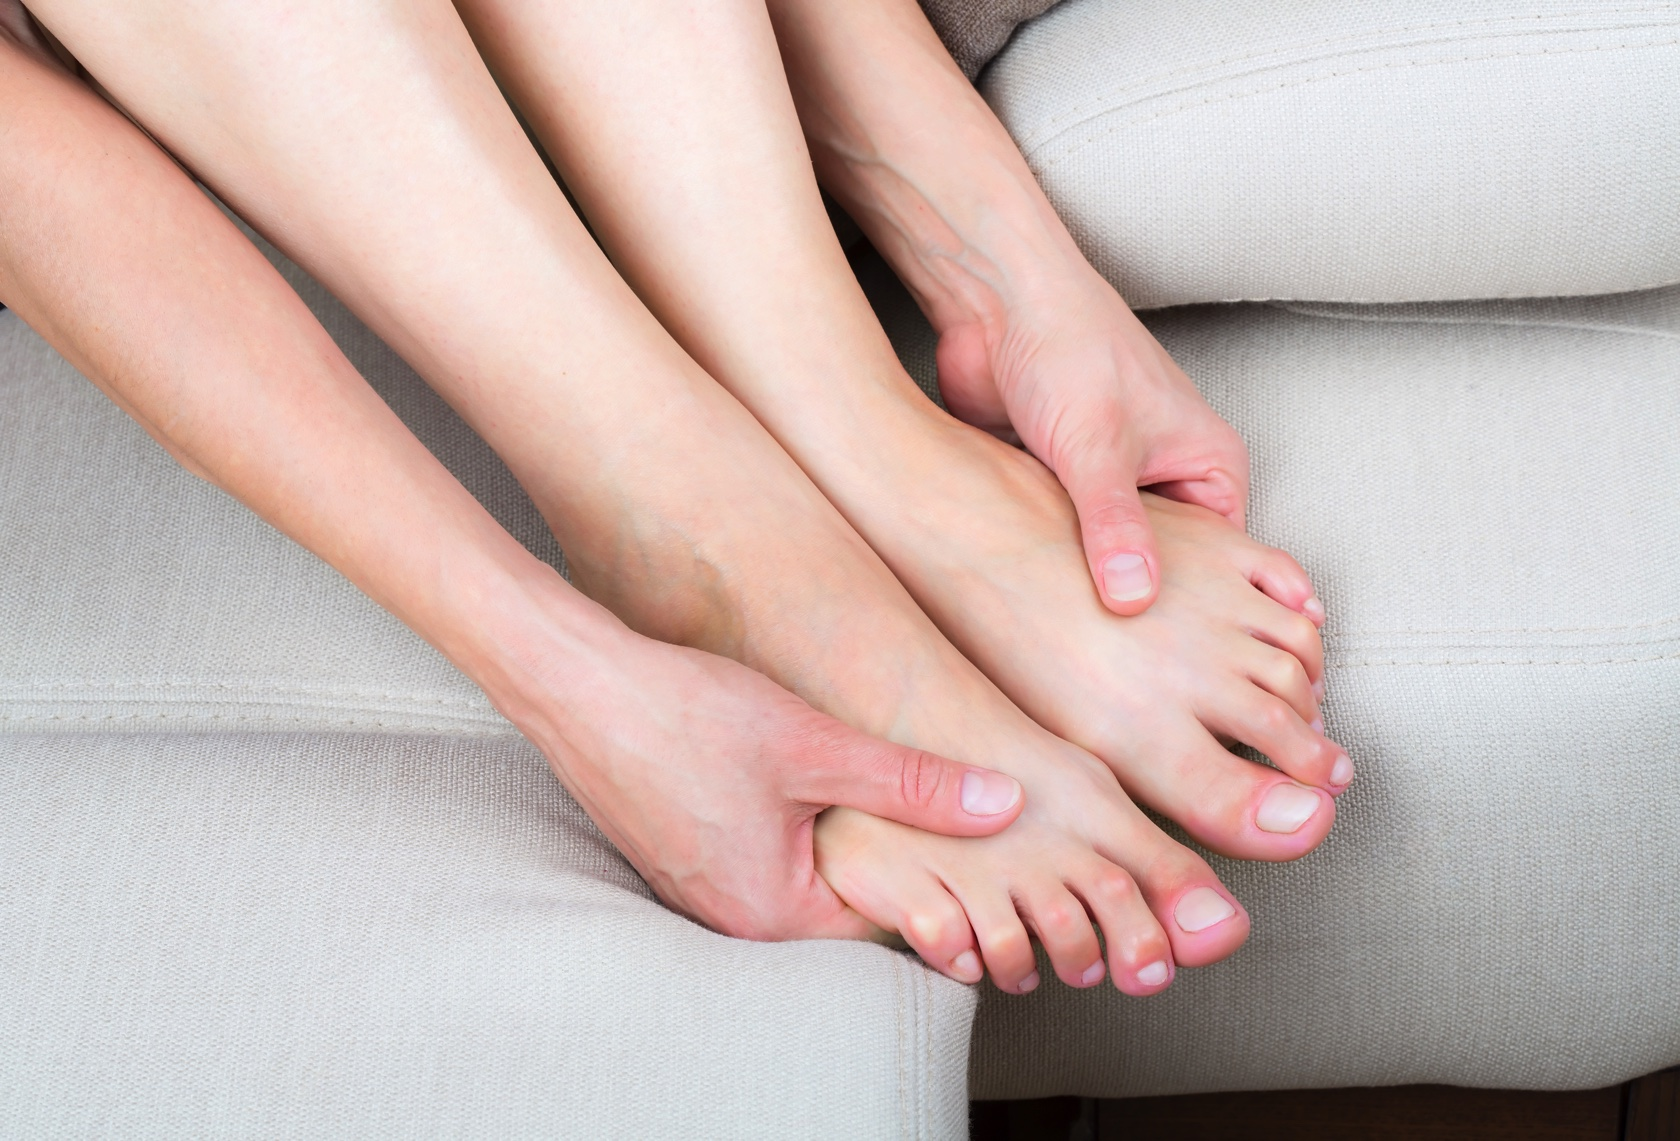 About Our Surgery Free Ingrown Toenail Treatments & Systems